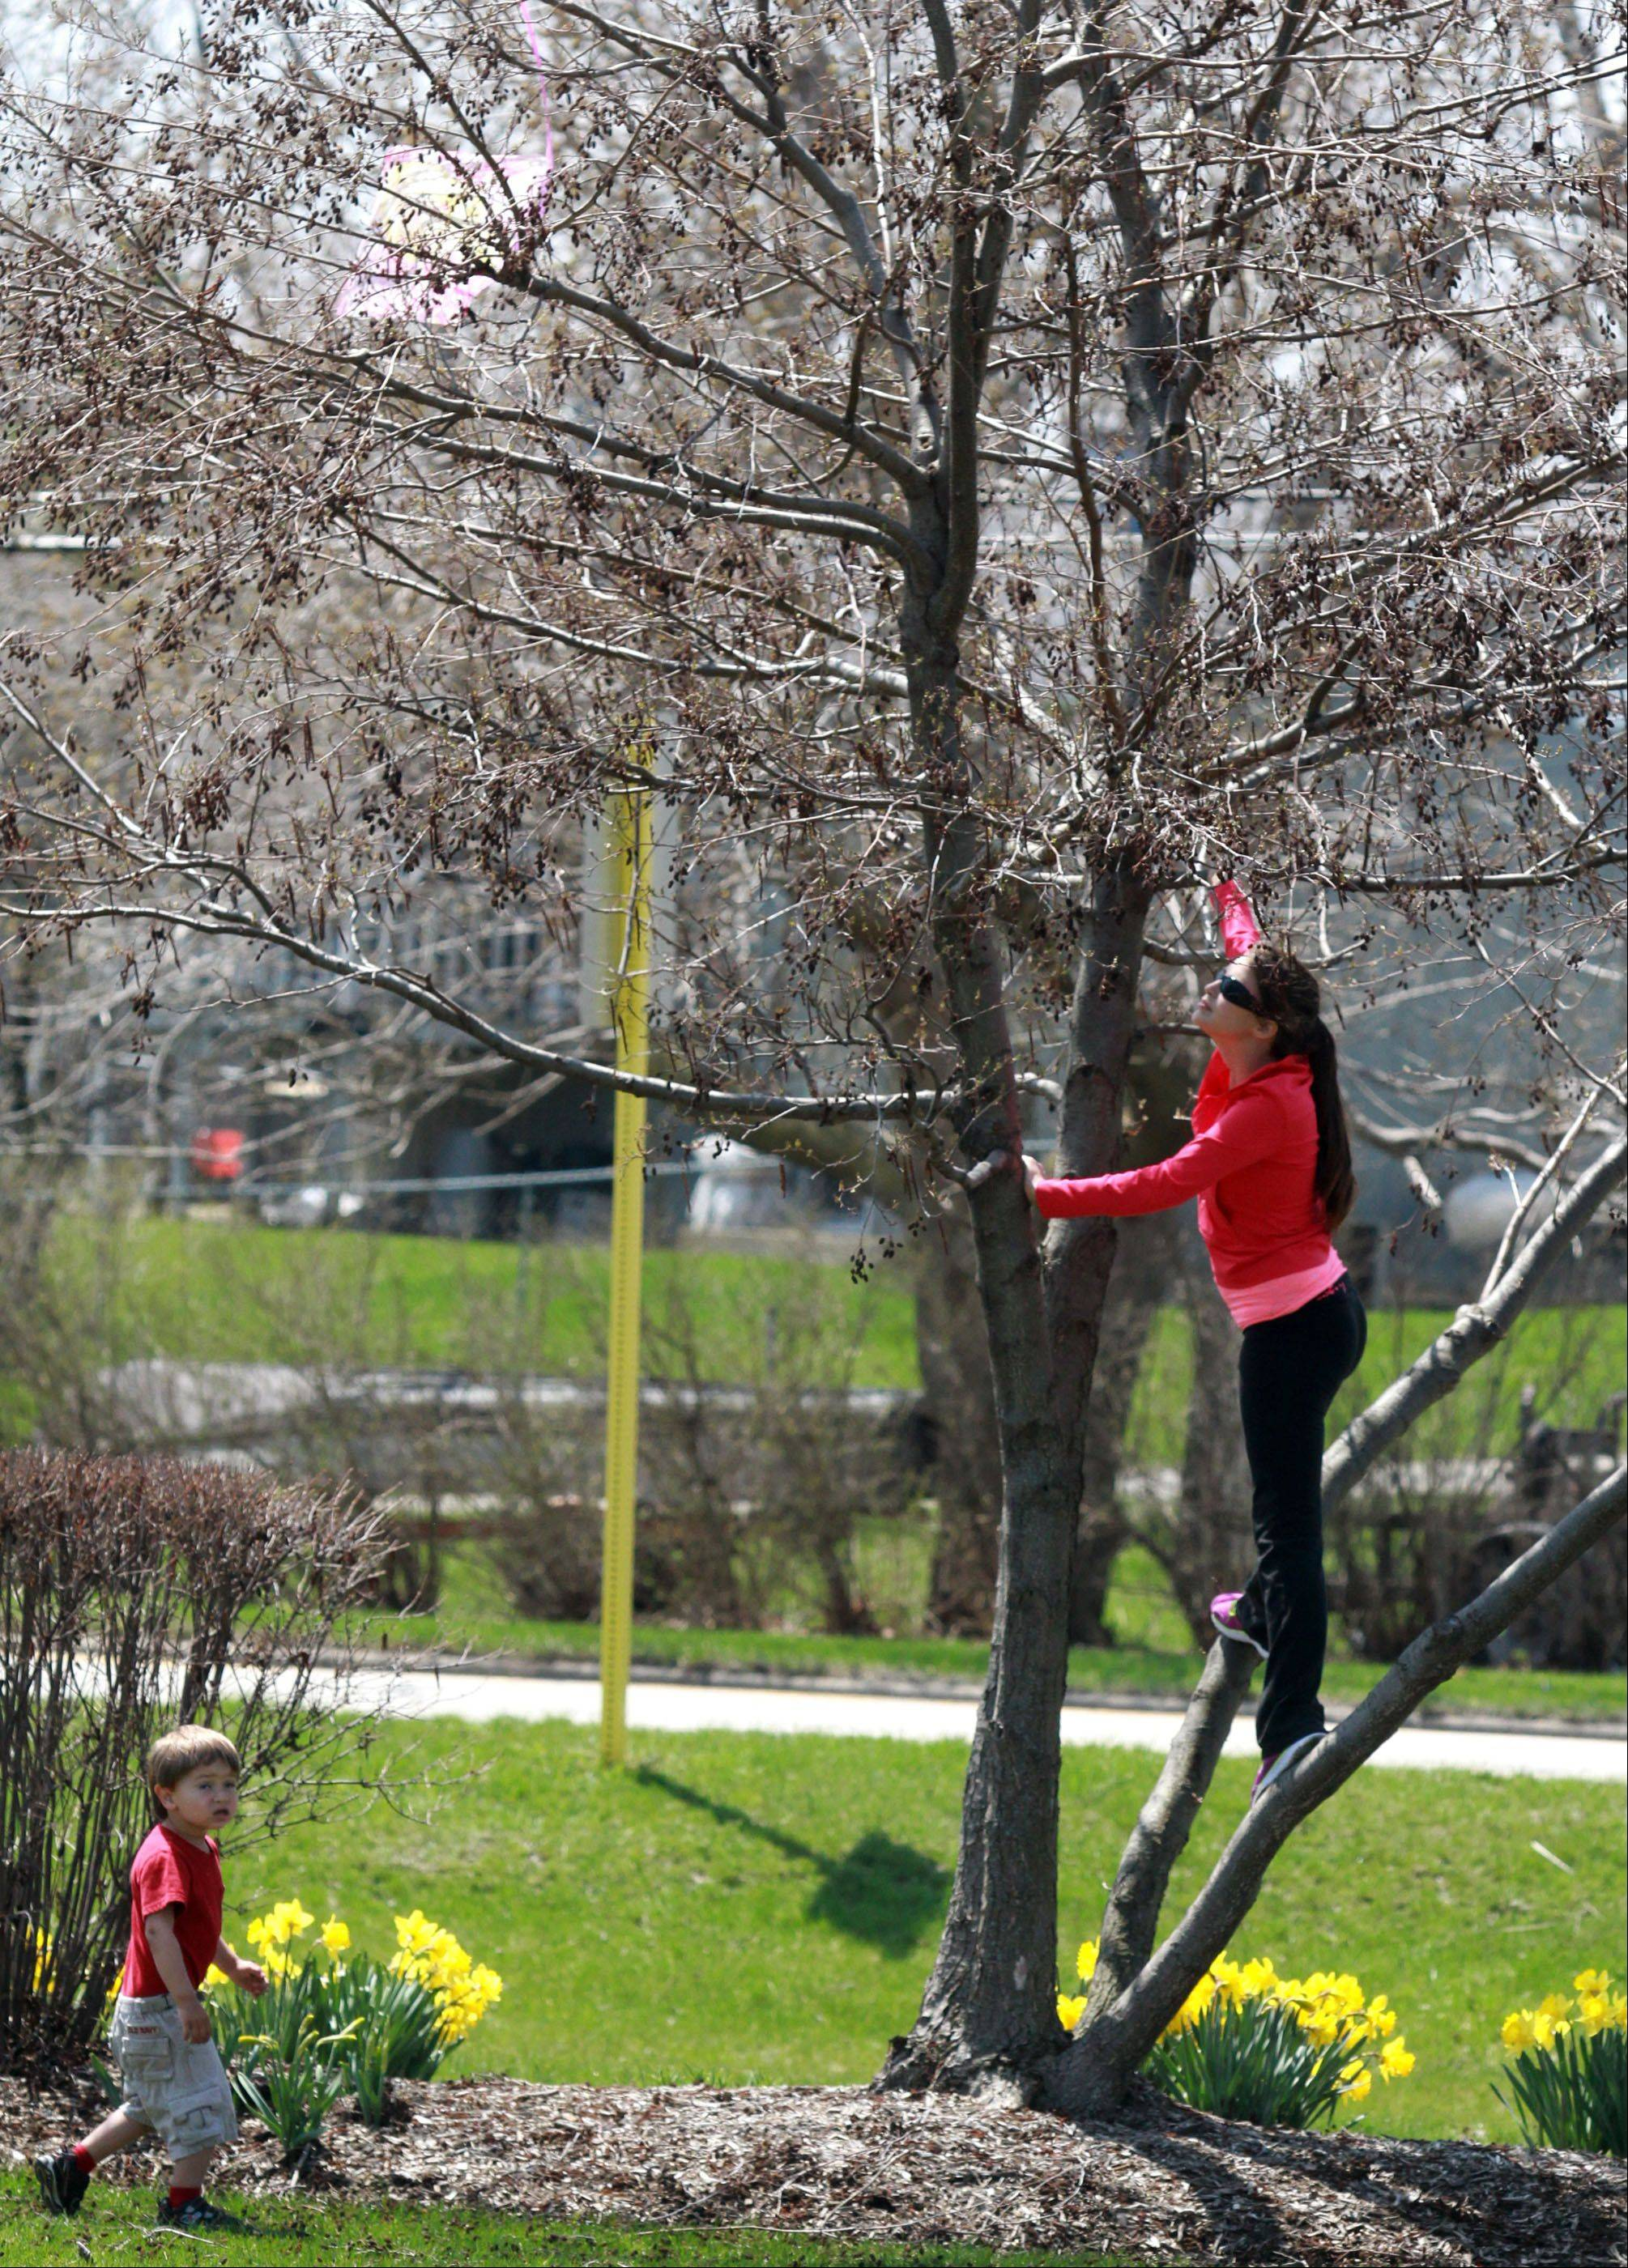 Nora Schneider, 16, of Crystal Lake, and Cole Benton, 2, of Lake Villa look for their kite in a tree at the 9th Annual Statewide Kite Fly at Slove Park in Lindenhurst on Saturday.